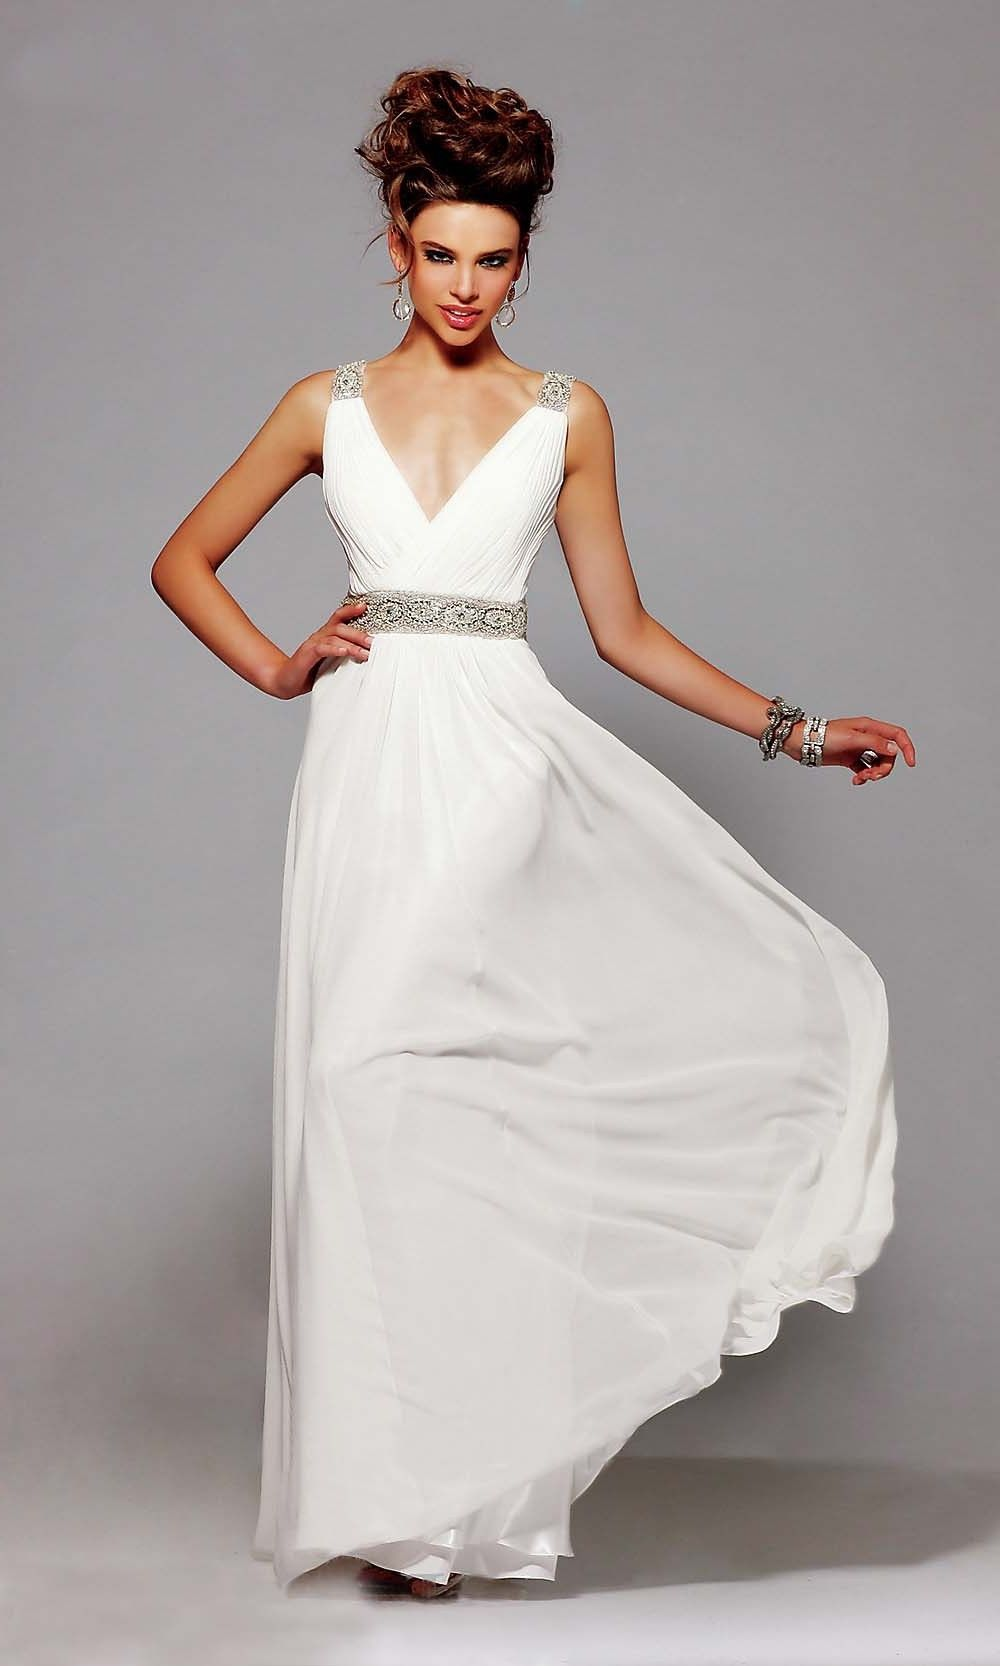 Mother of the groom dresses casual wedding  Aline Vneck Floorlength Chiffon with Beading Prom DressPD